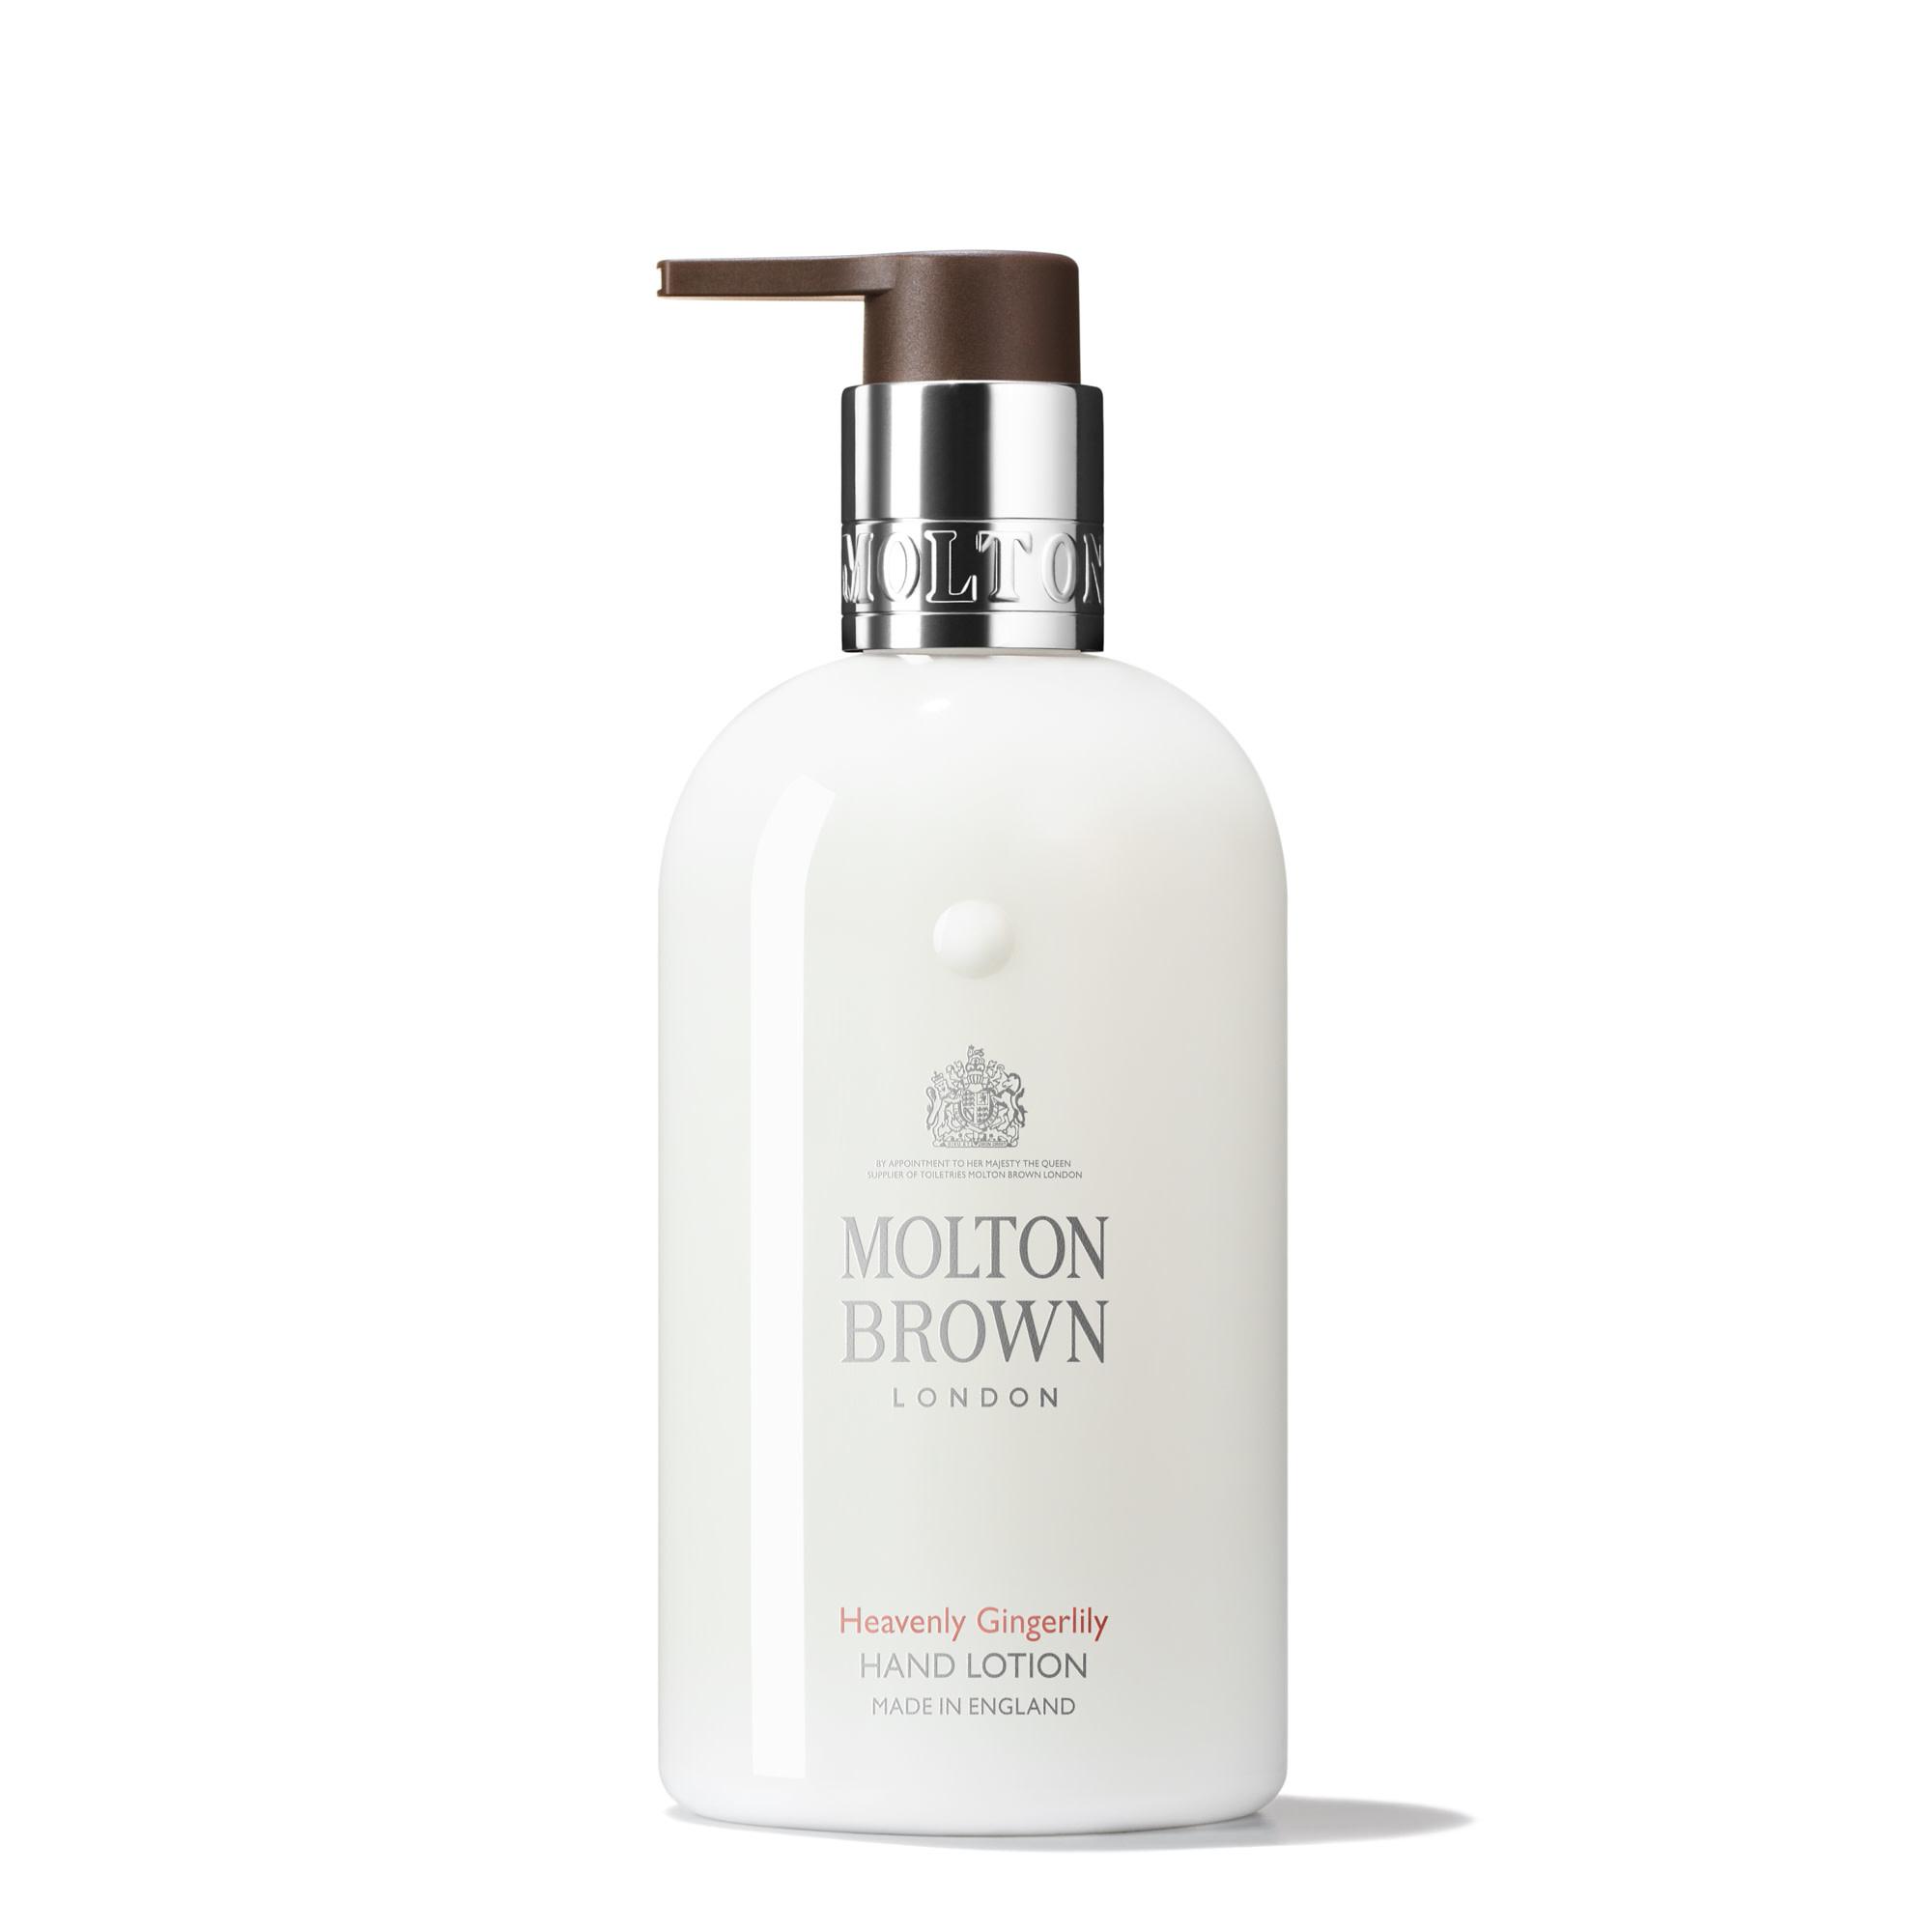 Heavenly gingerly hand lotion-1